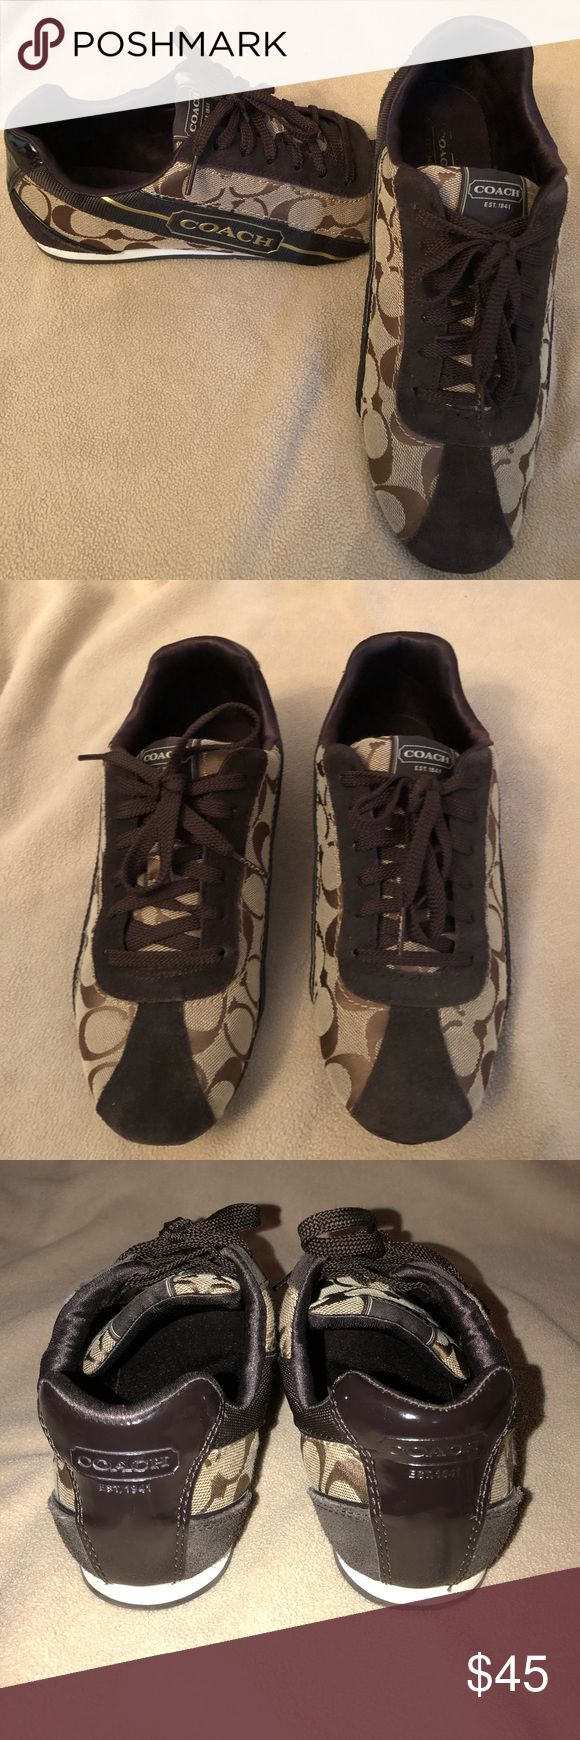 COACH Hilary sneakers, chocolate Excellent like new condition!! Coach Shoes Sneakers